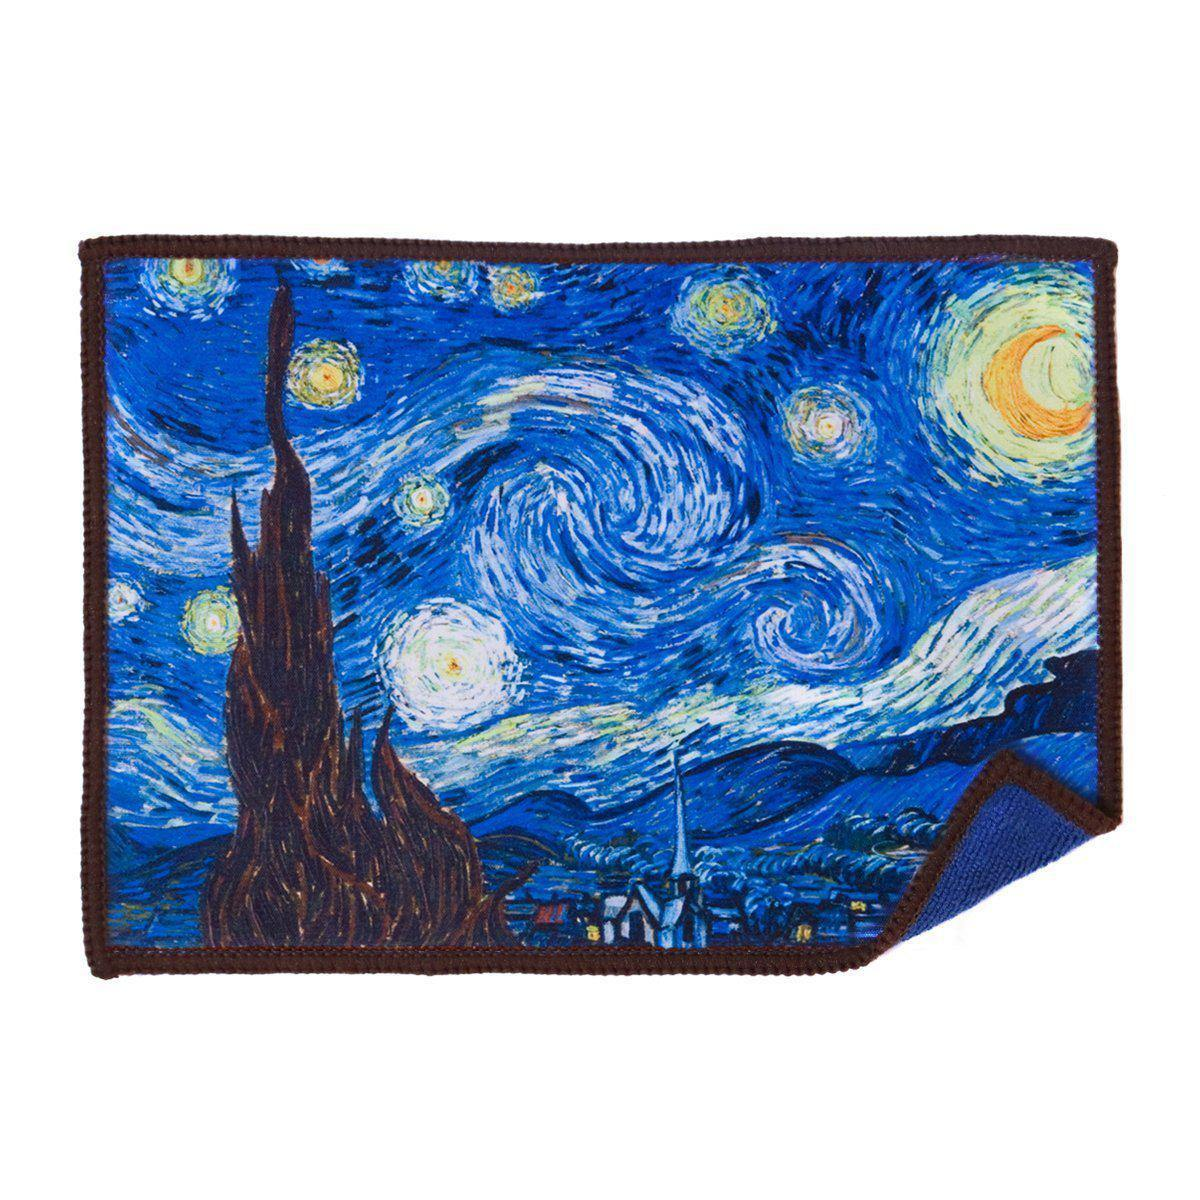 Smartie Microfiber Cloth - Starry Night by van Gogh